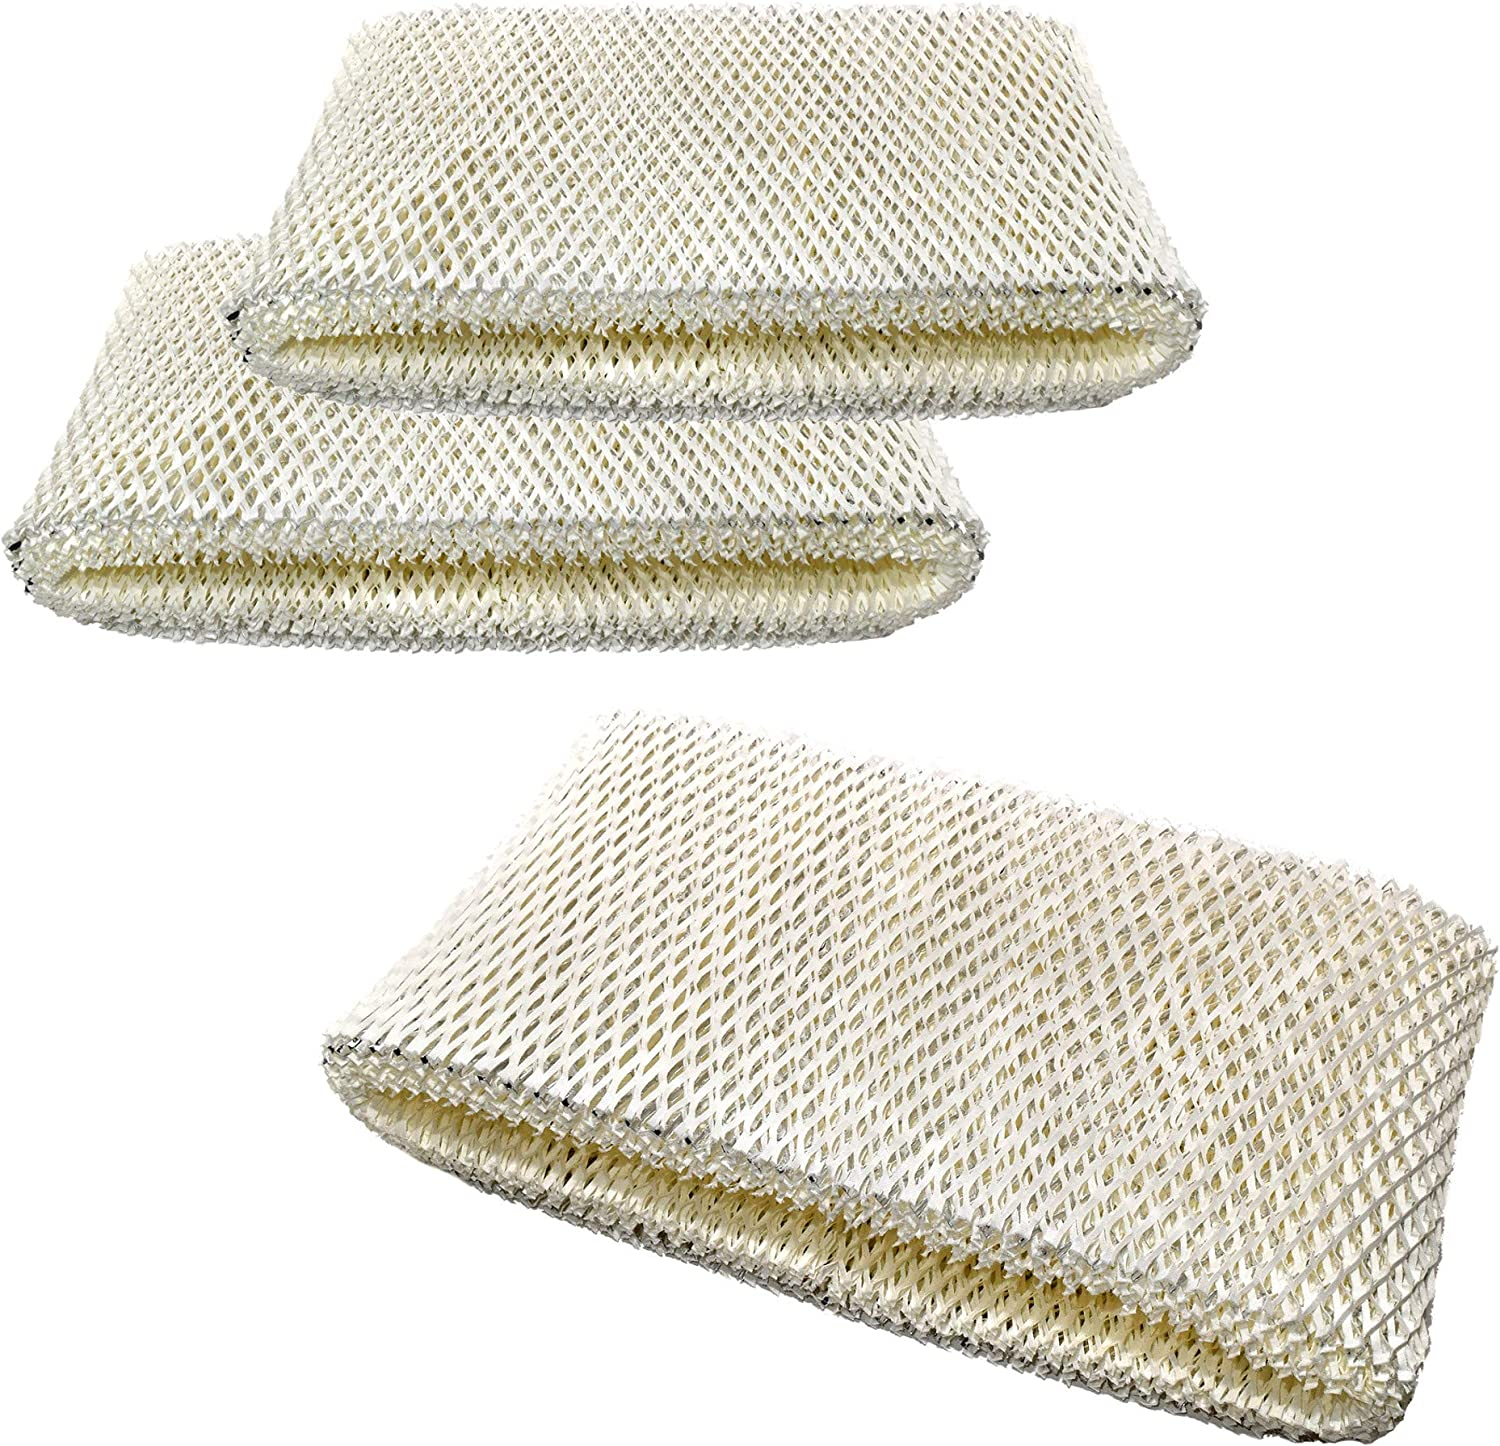 Humidifier Replacement Filter for Sunbeam SF221 3-Pack